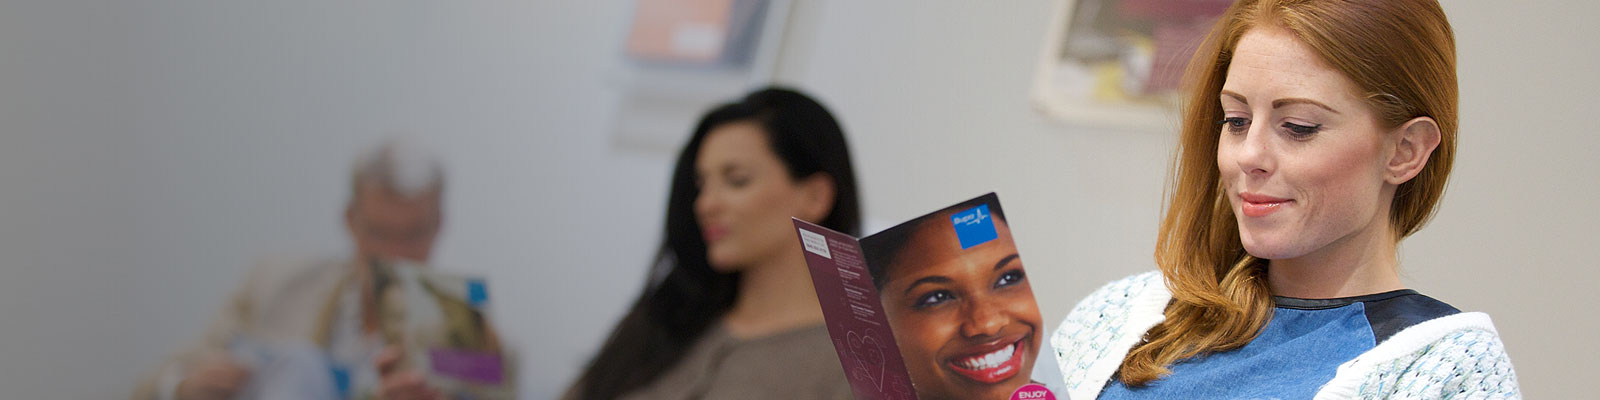 Woman in dentist waiting room, reading booklet